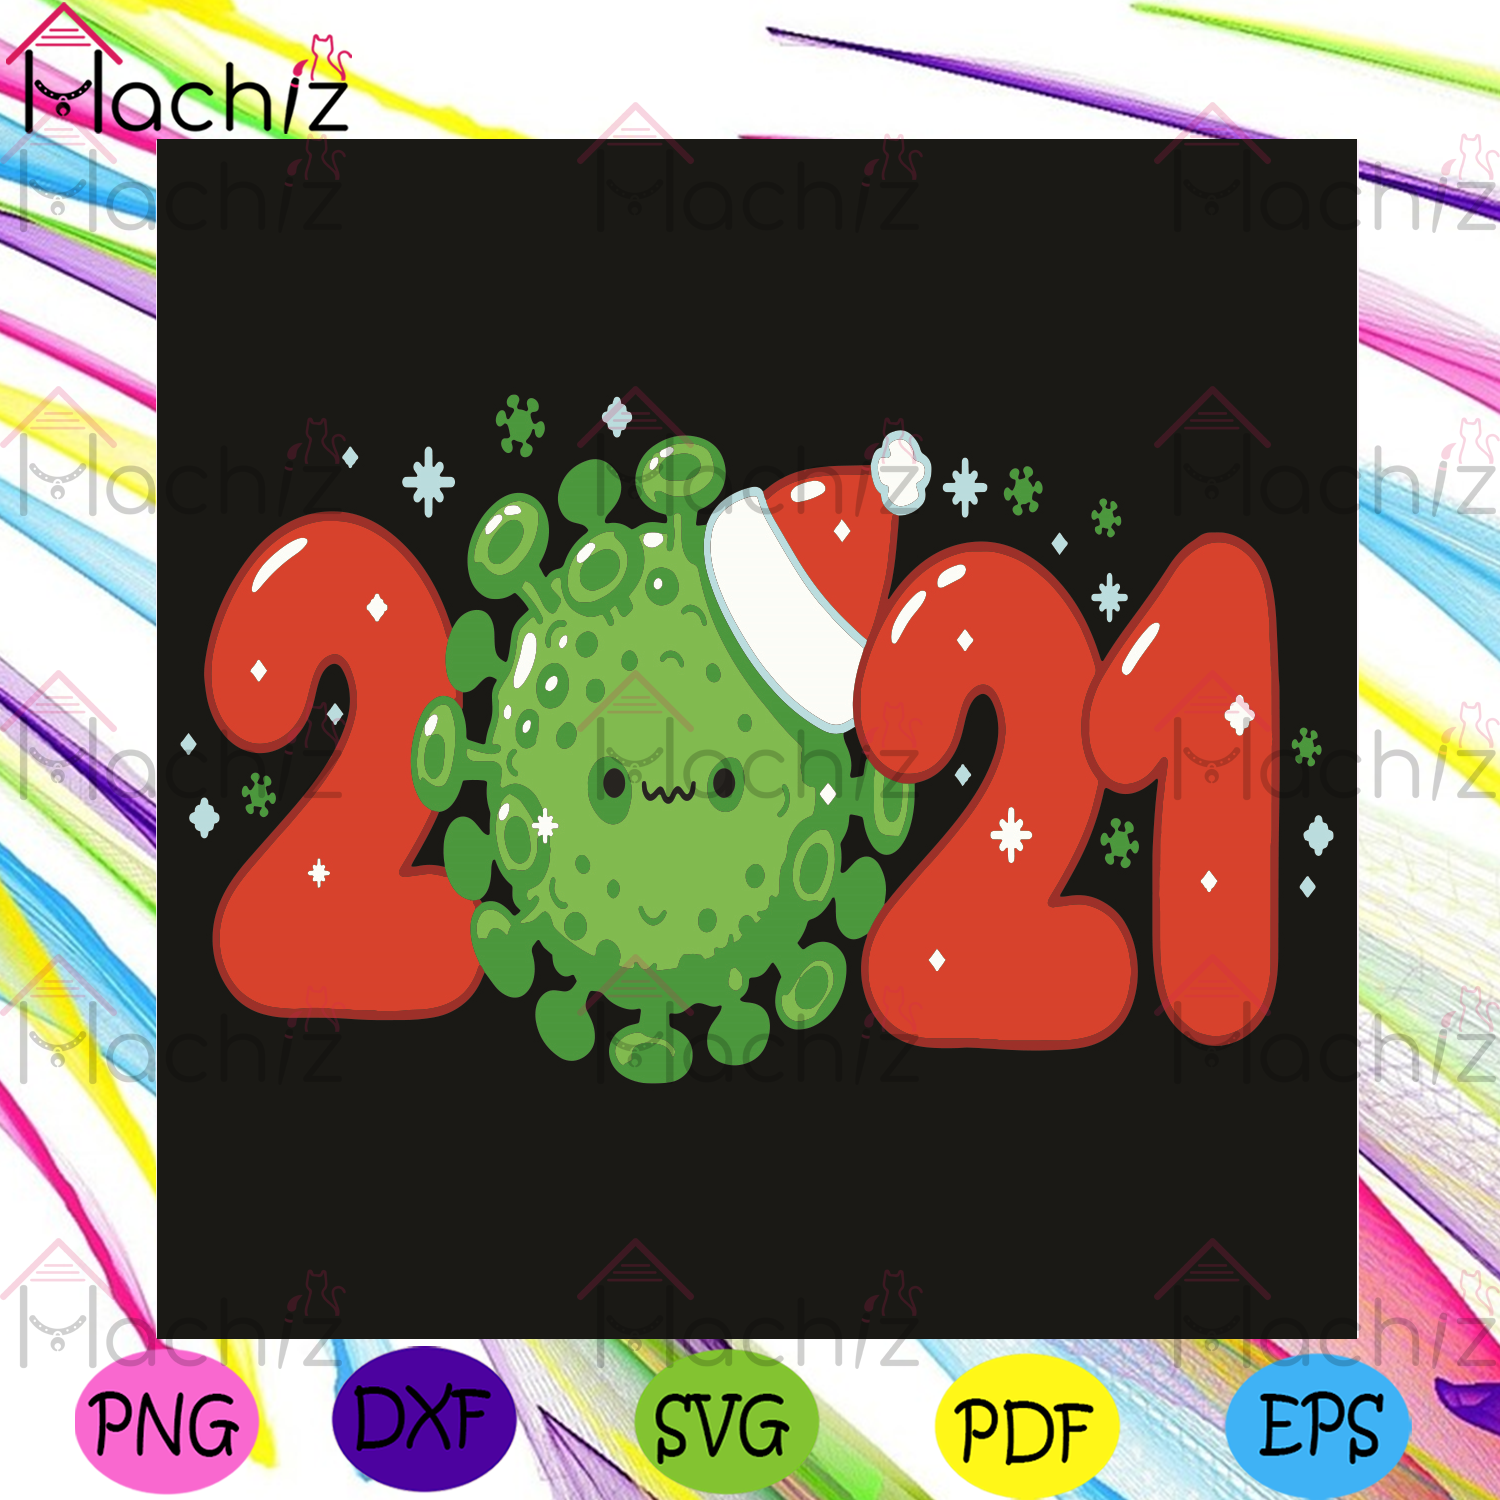 Happy New Year 2021 Svg, Trending Svg, 2021 Svg, Quarantine Svg, Coronavirus Svg, A Rough Year Svg, Healthy Life Svg, Social Distance Svg, Goodbye 2020 Svg, Happy Year Svg, Funny Design, New Year Gifts Svg, Covid 19 Svg